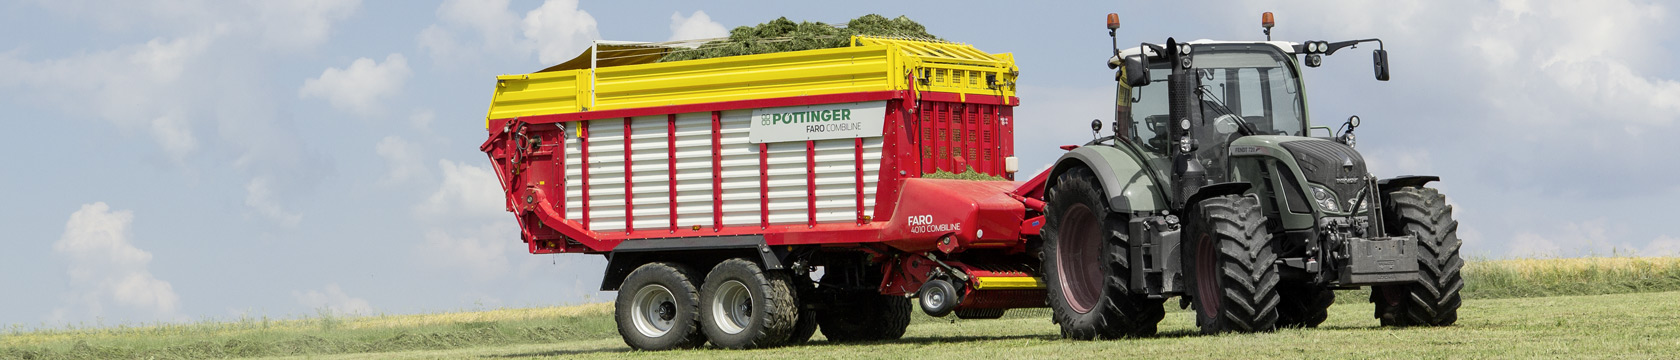 FARO COMBILINE 2 in 1 loader wagon technology